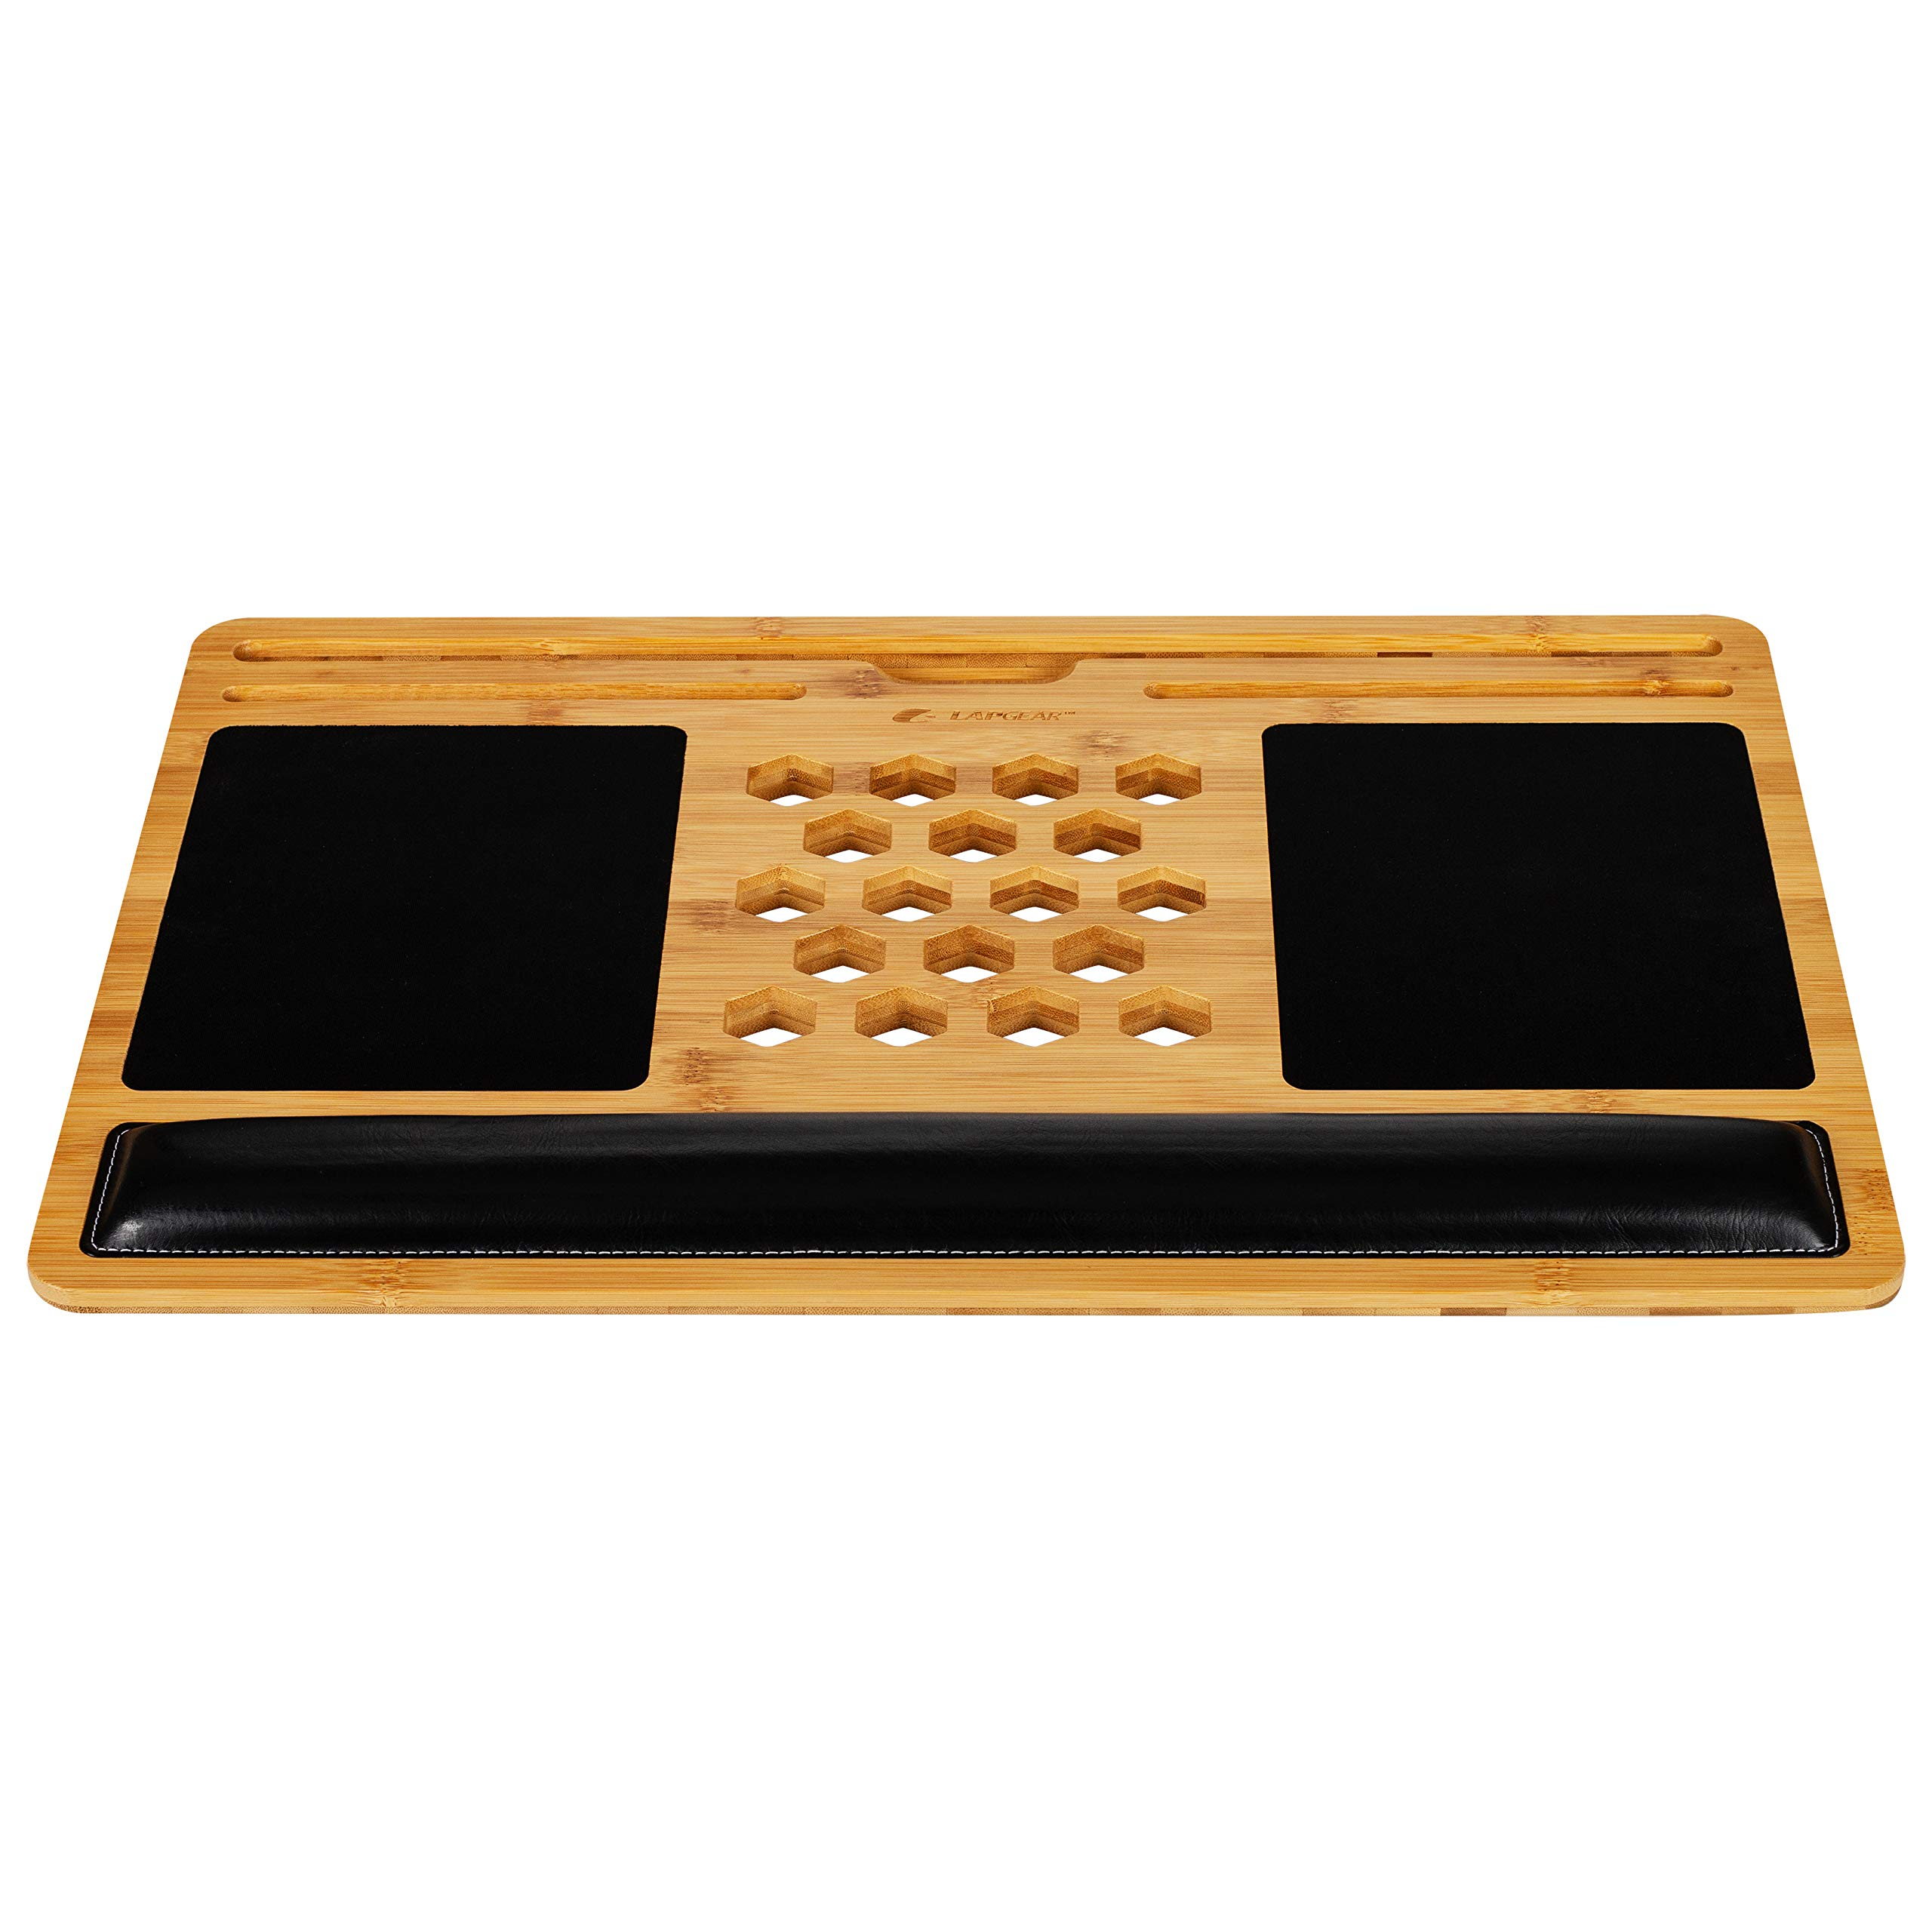 LapGear Bamboard Pro Lap Desk with Wrist Rest, Mouse Pads, and Phone Holder - Fits Up to 17.3 Inch Laptops and Most Tablet Devices - Style No. 77101 by LapGear (Image #3)